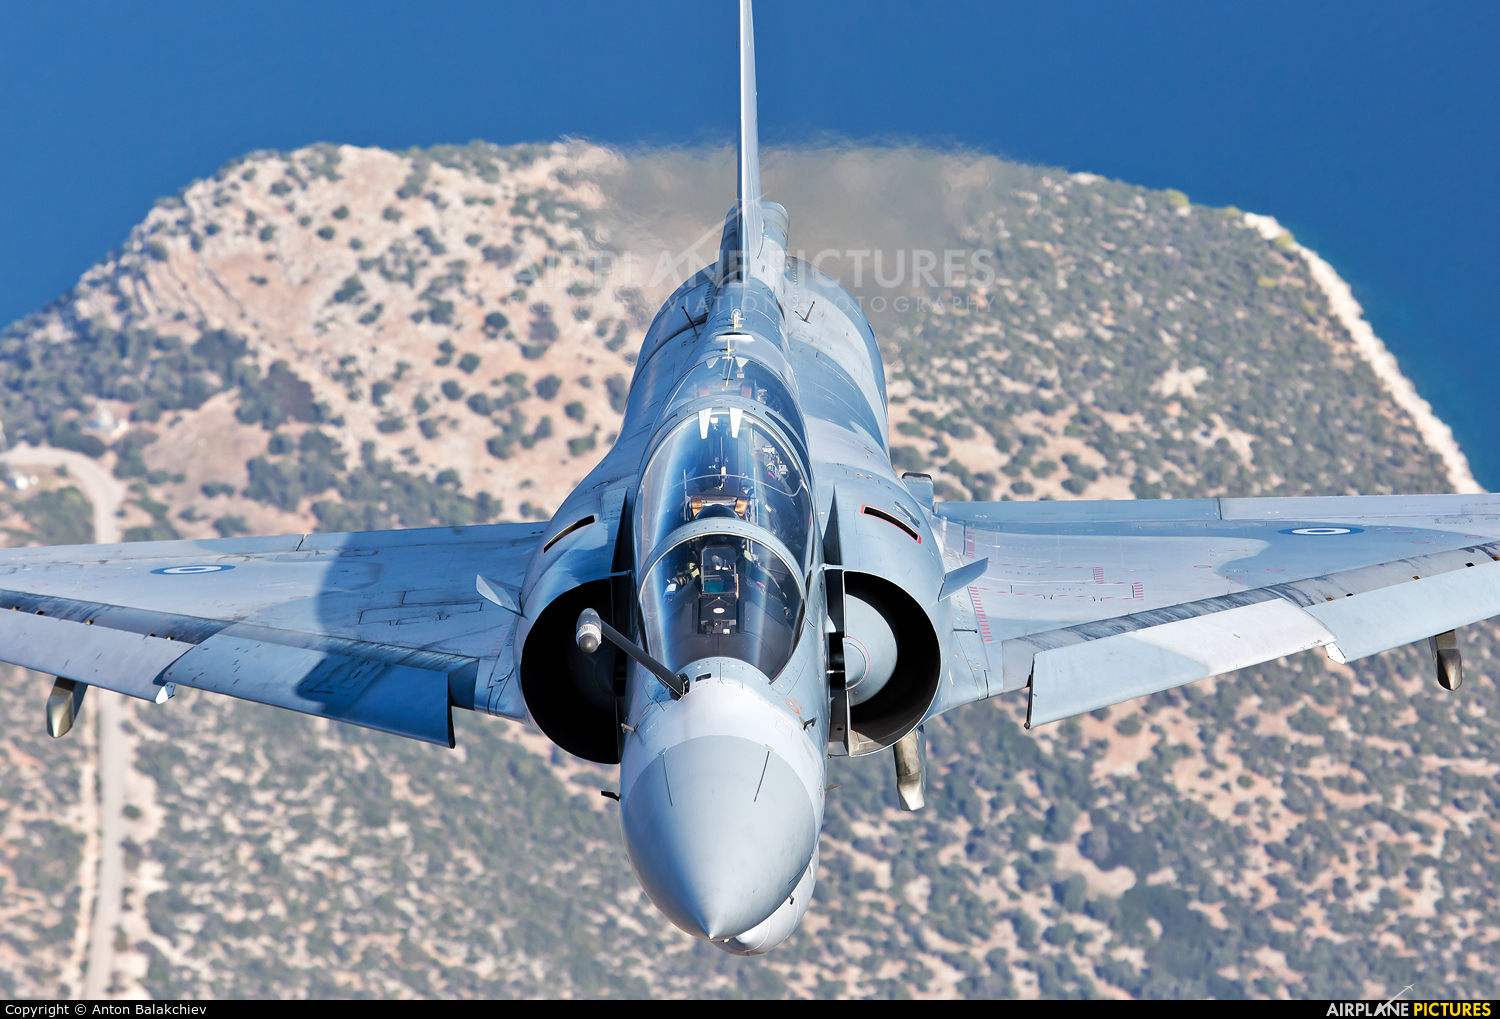 Greece - Hellenic Air Force 506 aircraft at In Flight - Greece